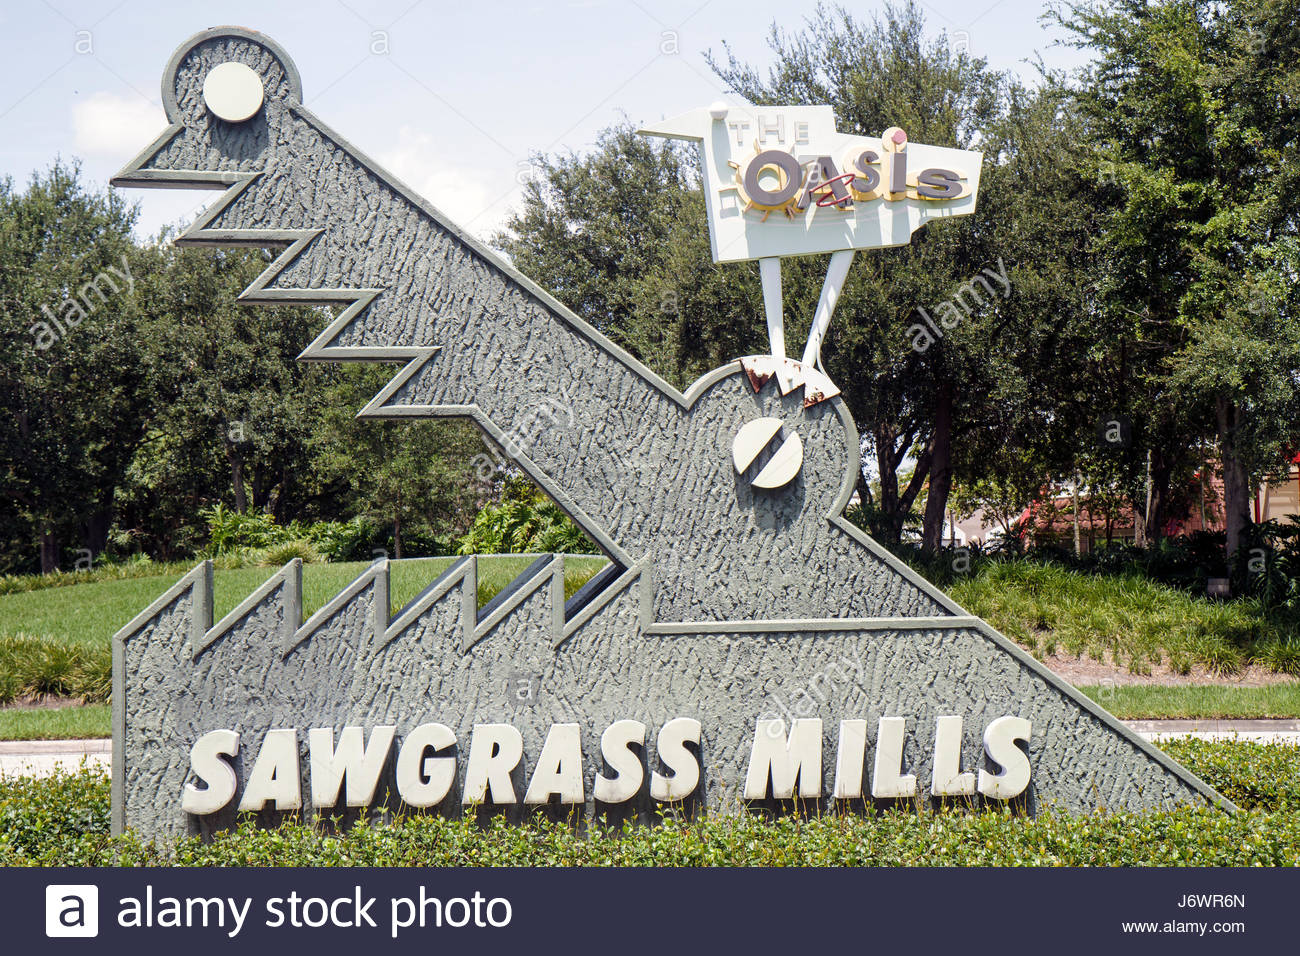 Fort Lauderdale Ft. Florida Sunrise Sawgrass Mills Mall entrance sign alligator - Stock Image